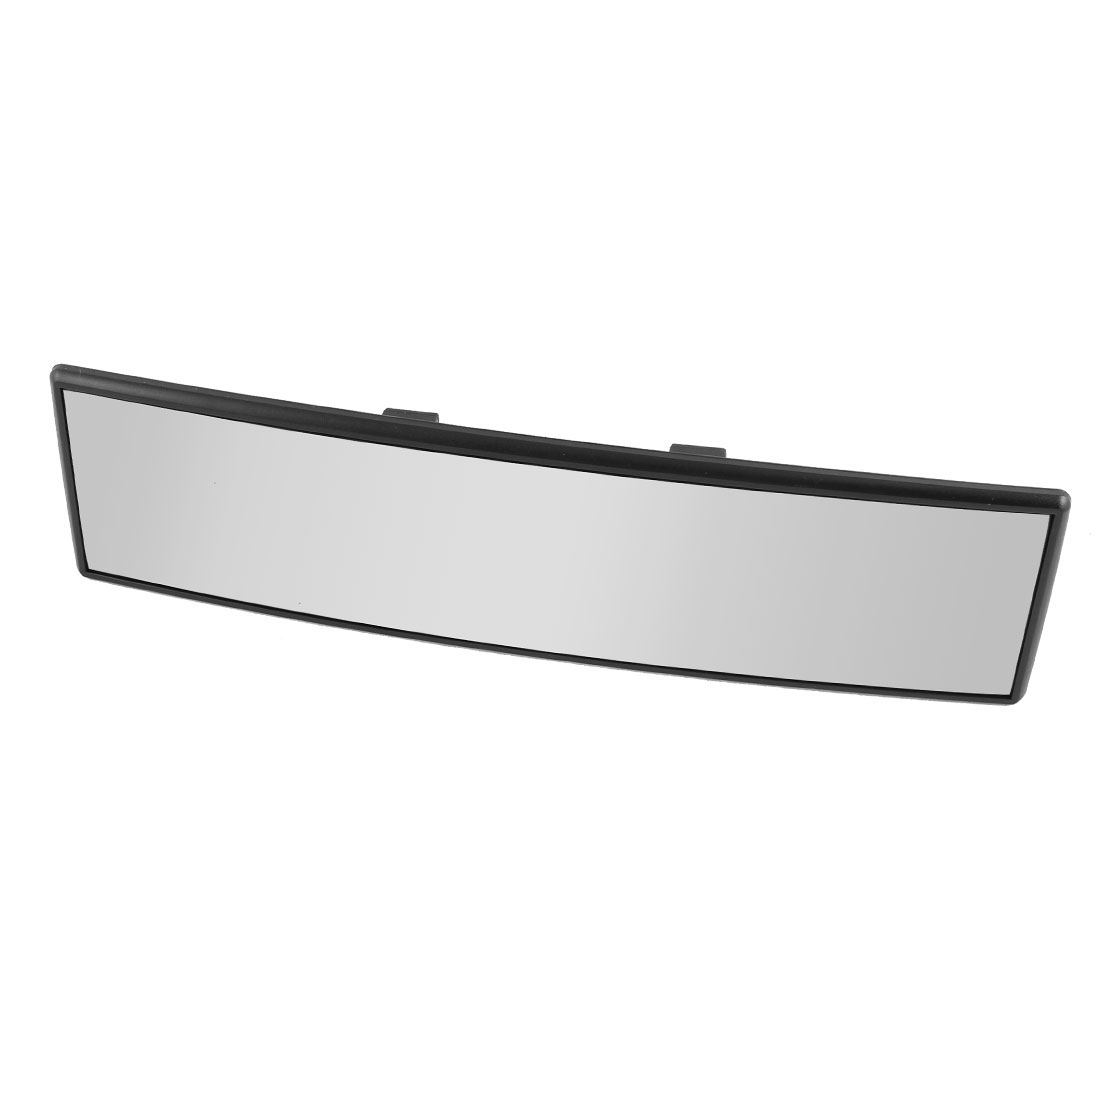 Car Wide Angle Clip On Interior Rear View Curve Mirror 280mm Length